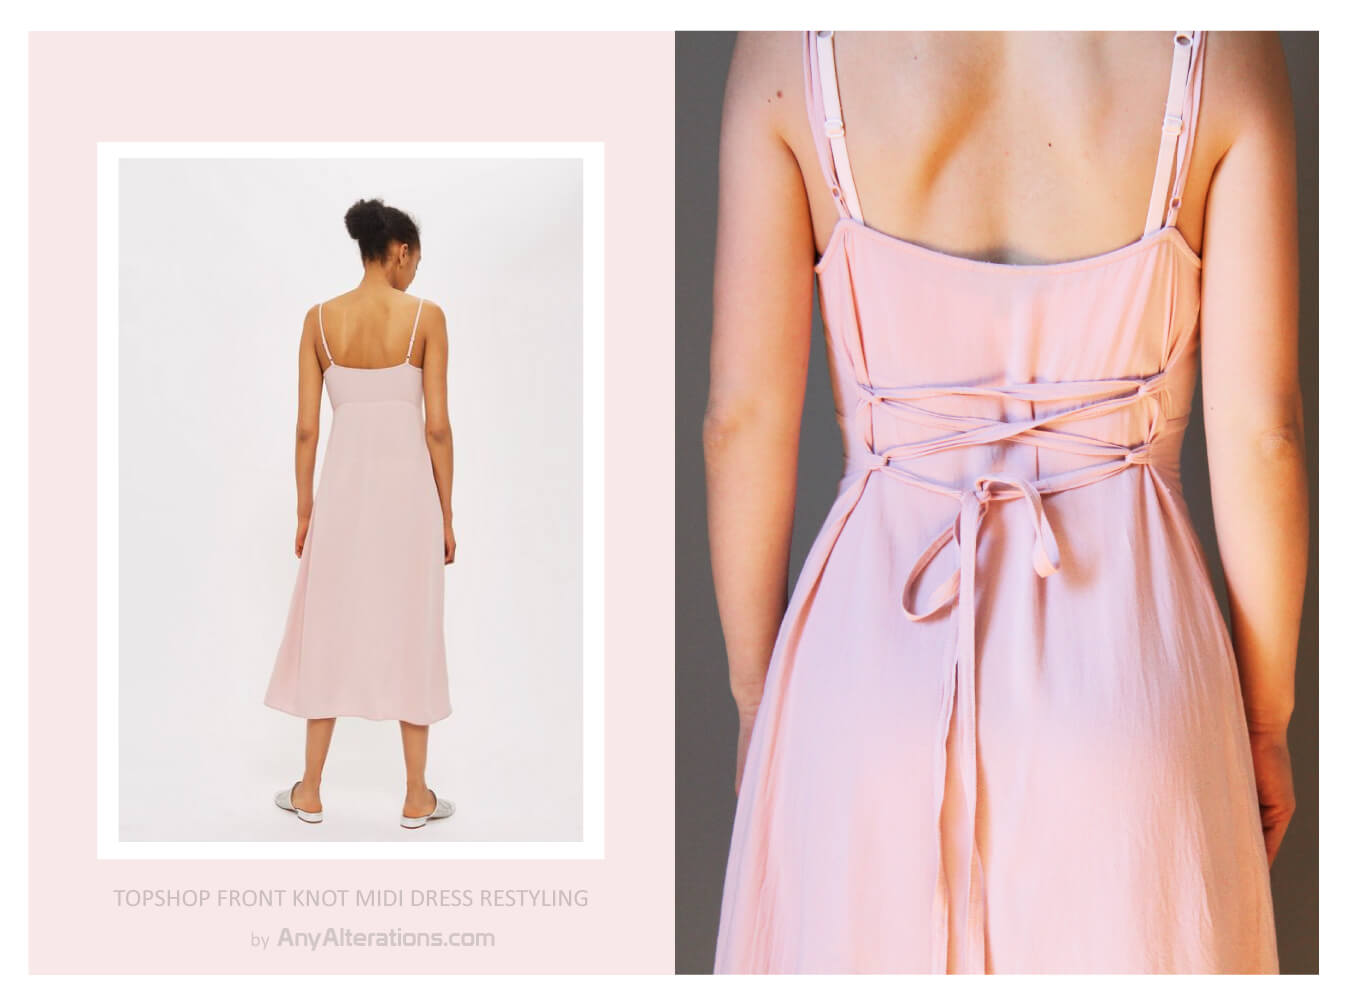 Topshop-Front-Knot-Midi-Dress-Restyling-By-AnyAlterations.com-02